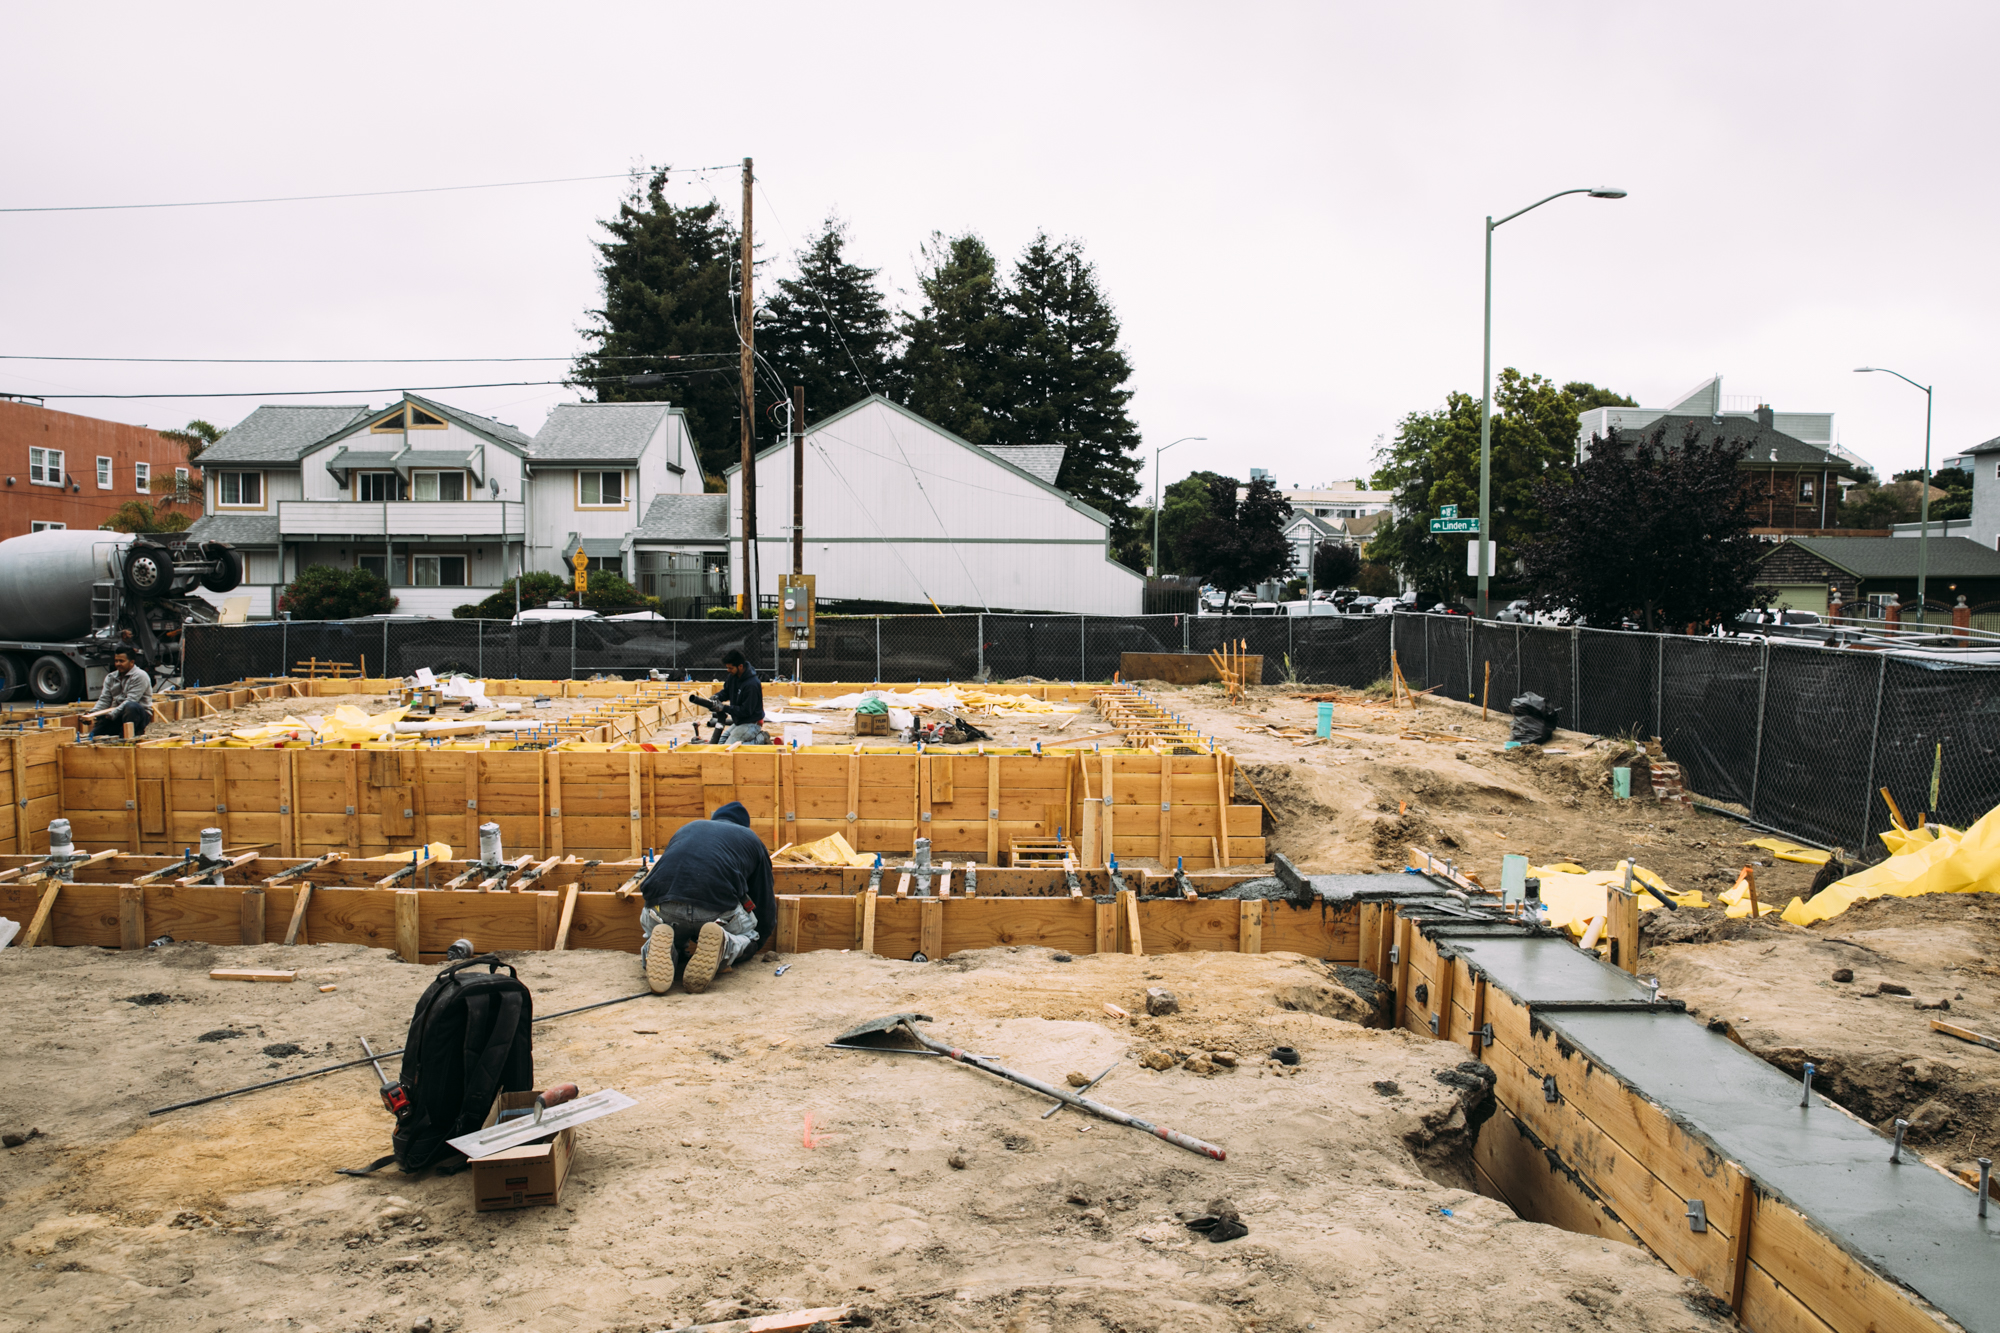 061019-00306_18thLinden_Construction.jpg